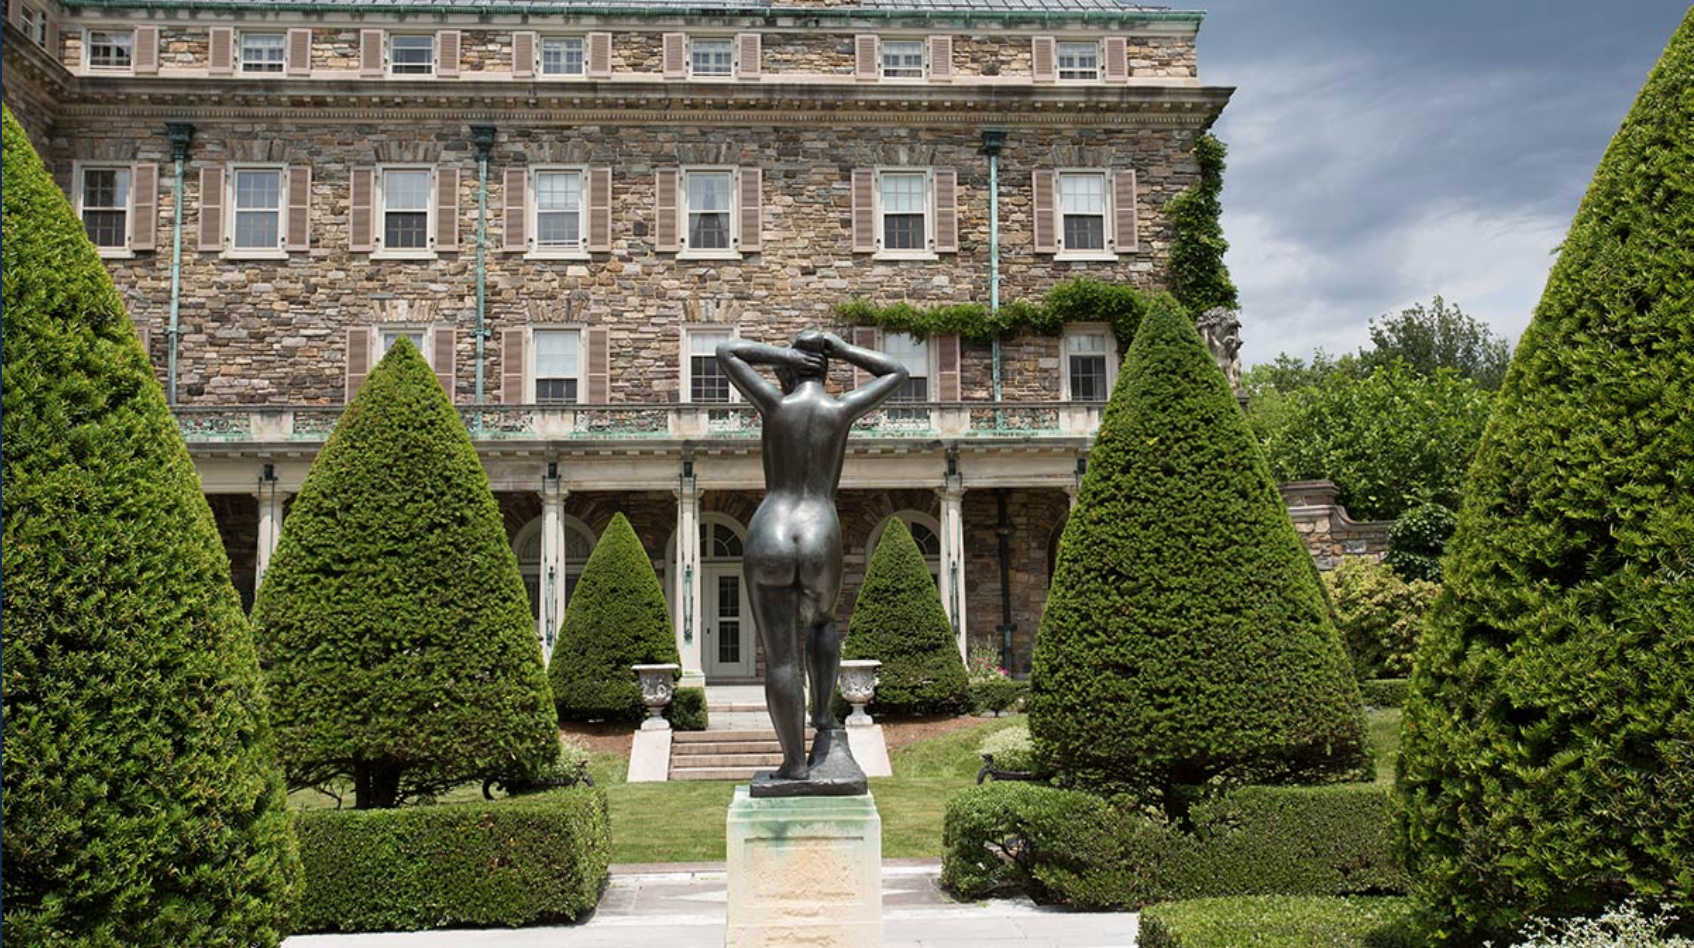 A guide to Historical Properties including the Van Cortland and Philipsburg Manors, the Rockefeller Estate, and Washington Irving's Sunnyside. - hudsonvalley.org